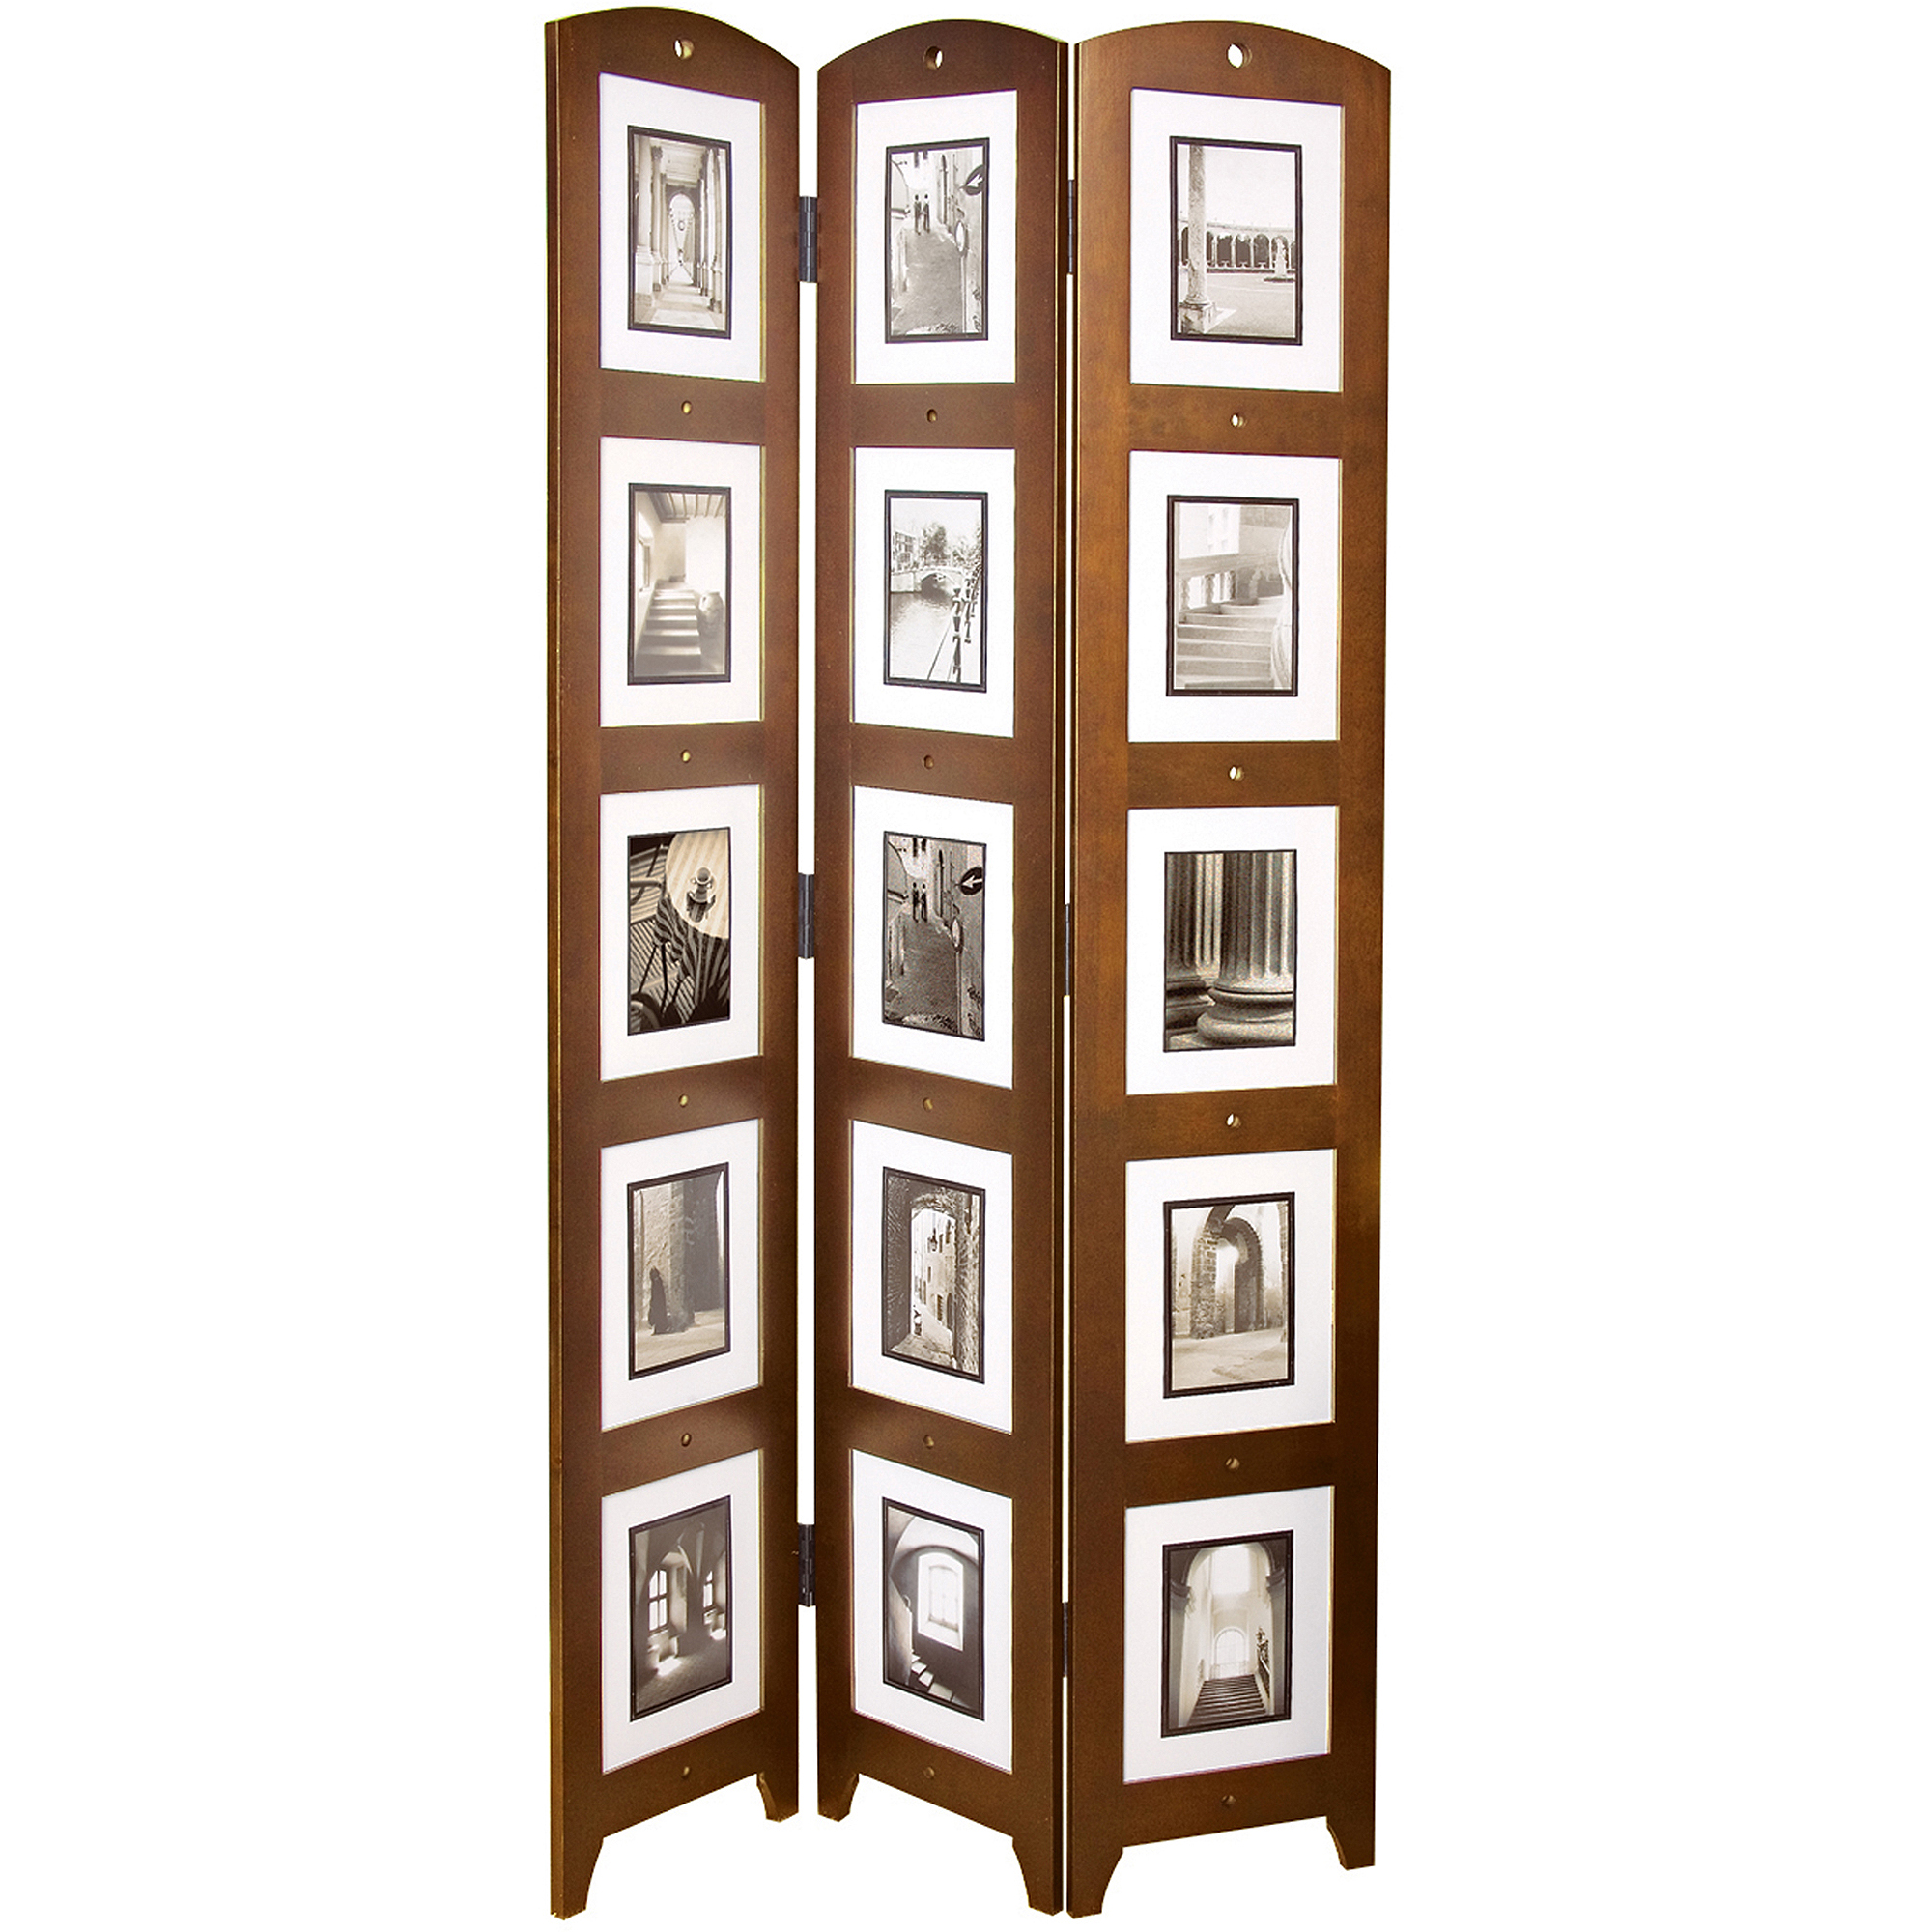 "Kiera Grace Triple-Panel Cairo Photo Screen Room Divider, Holds 15 Photos, 33"" x 64.5"""